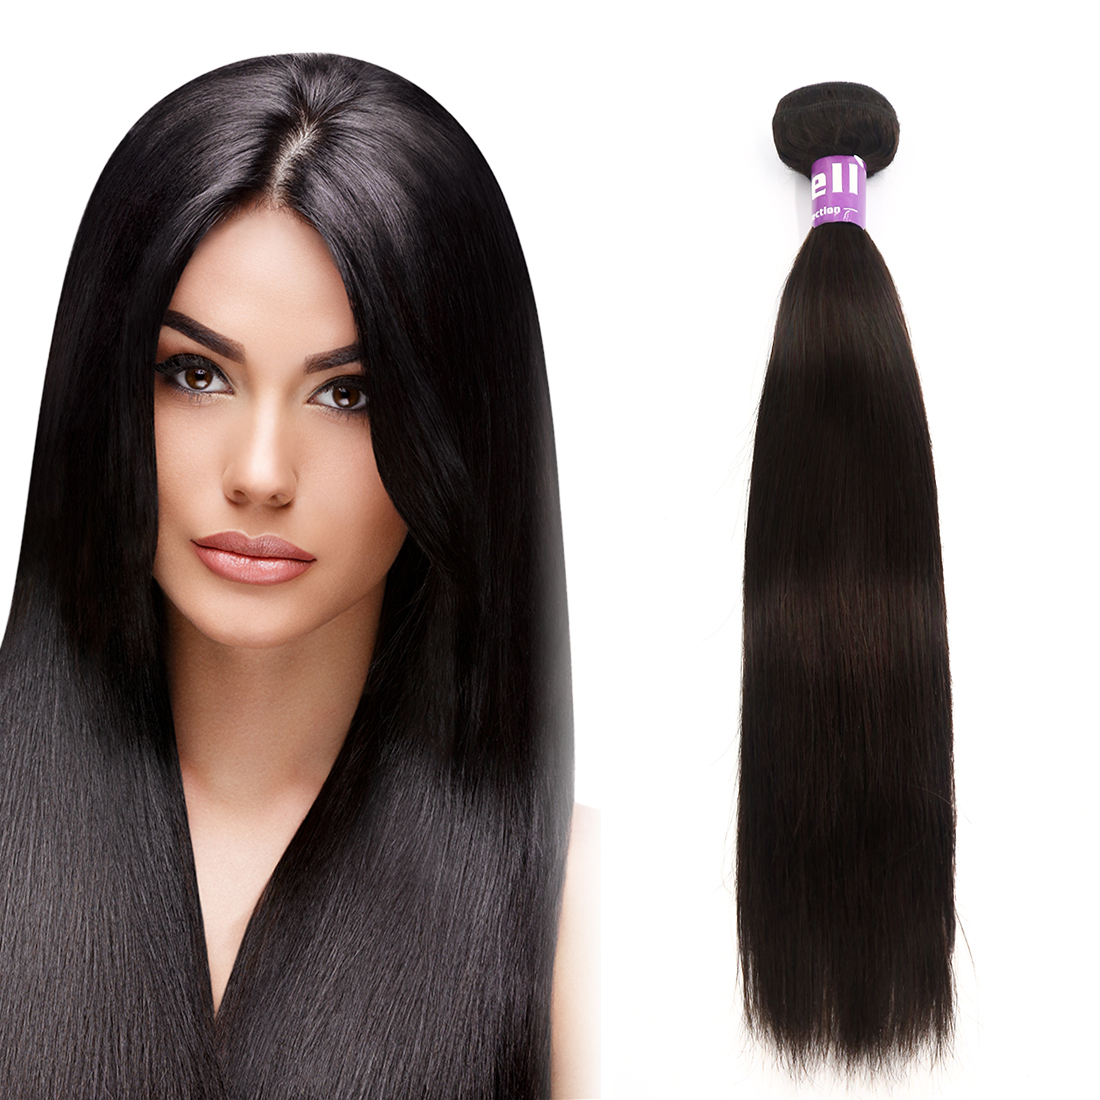 "Peruvian Virgin Silky Straight Human Hair Weave Extensions 7A 14"" 1 Bundle"